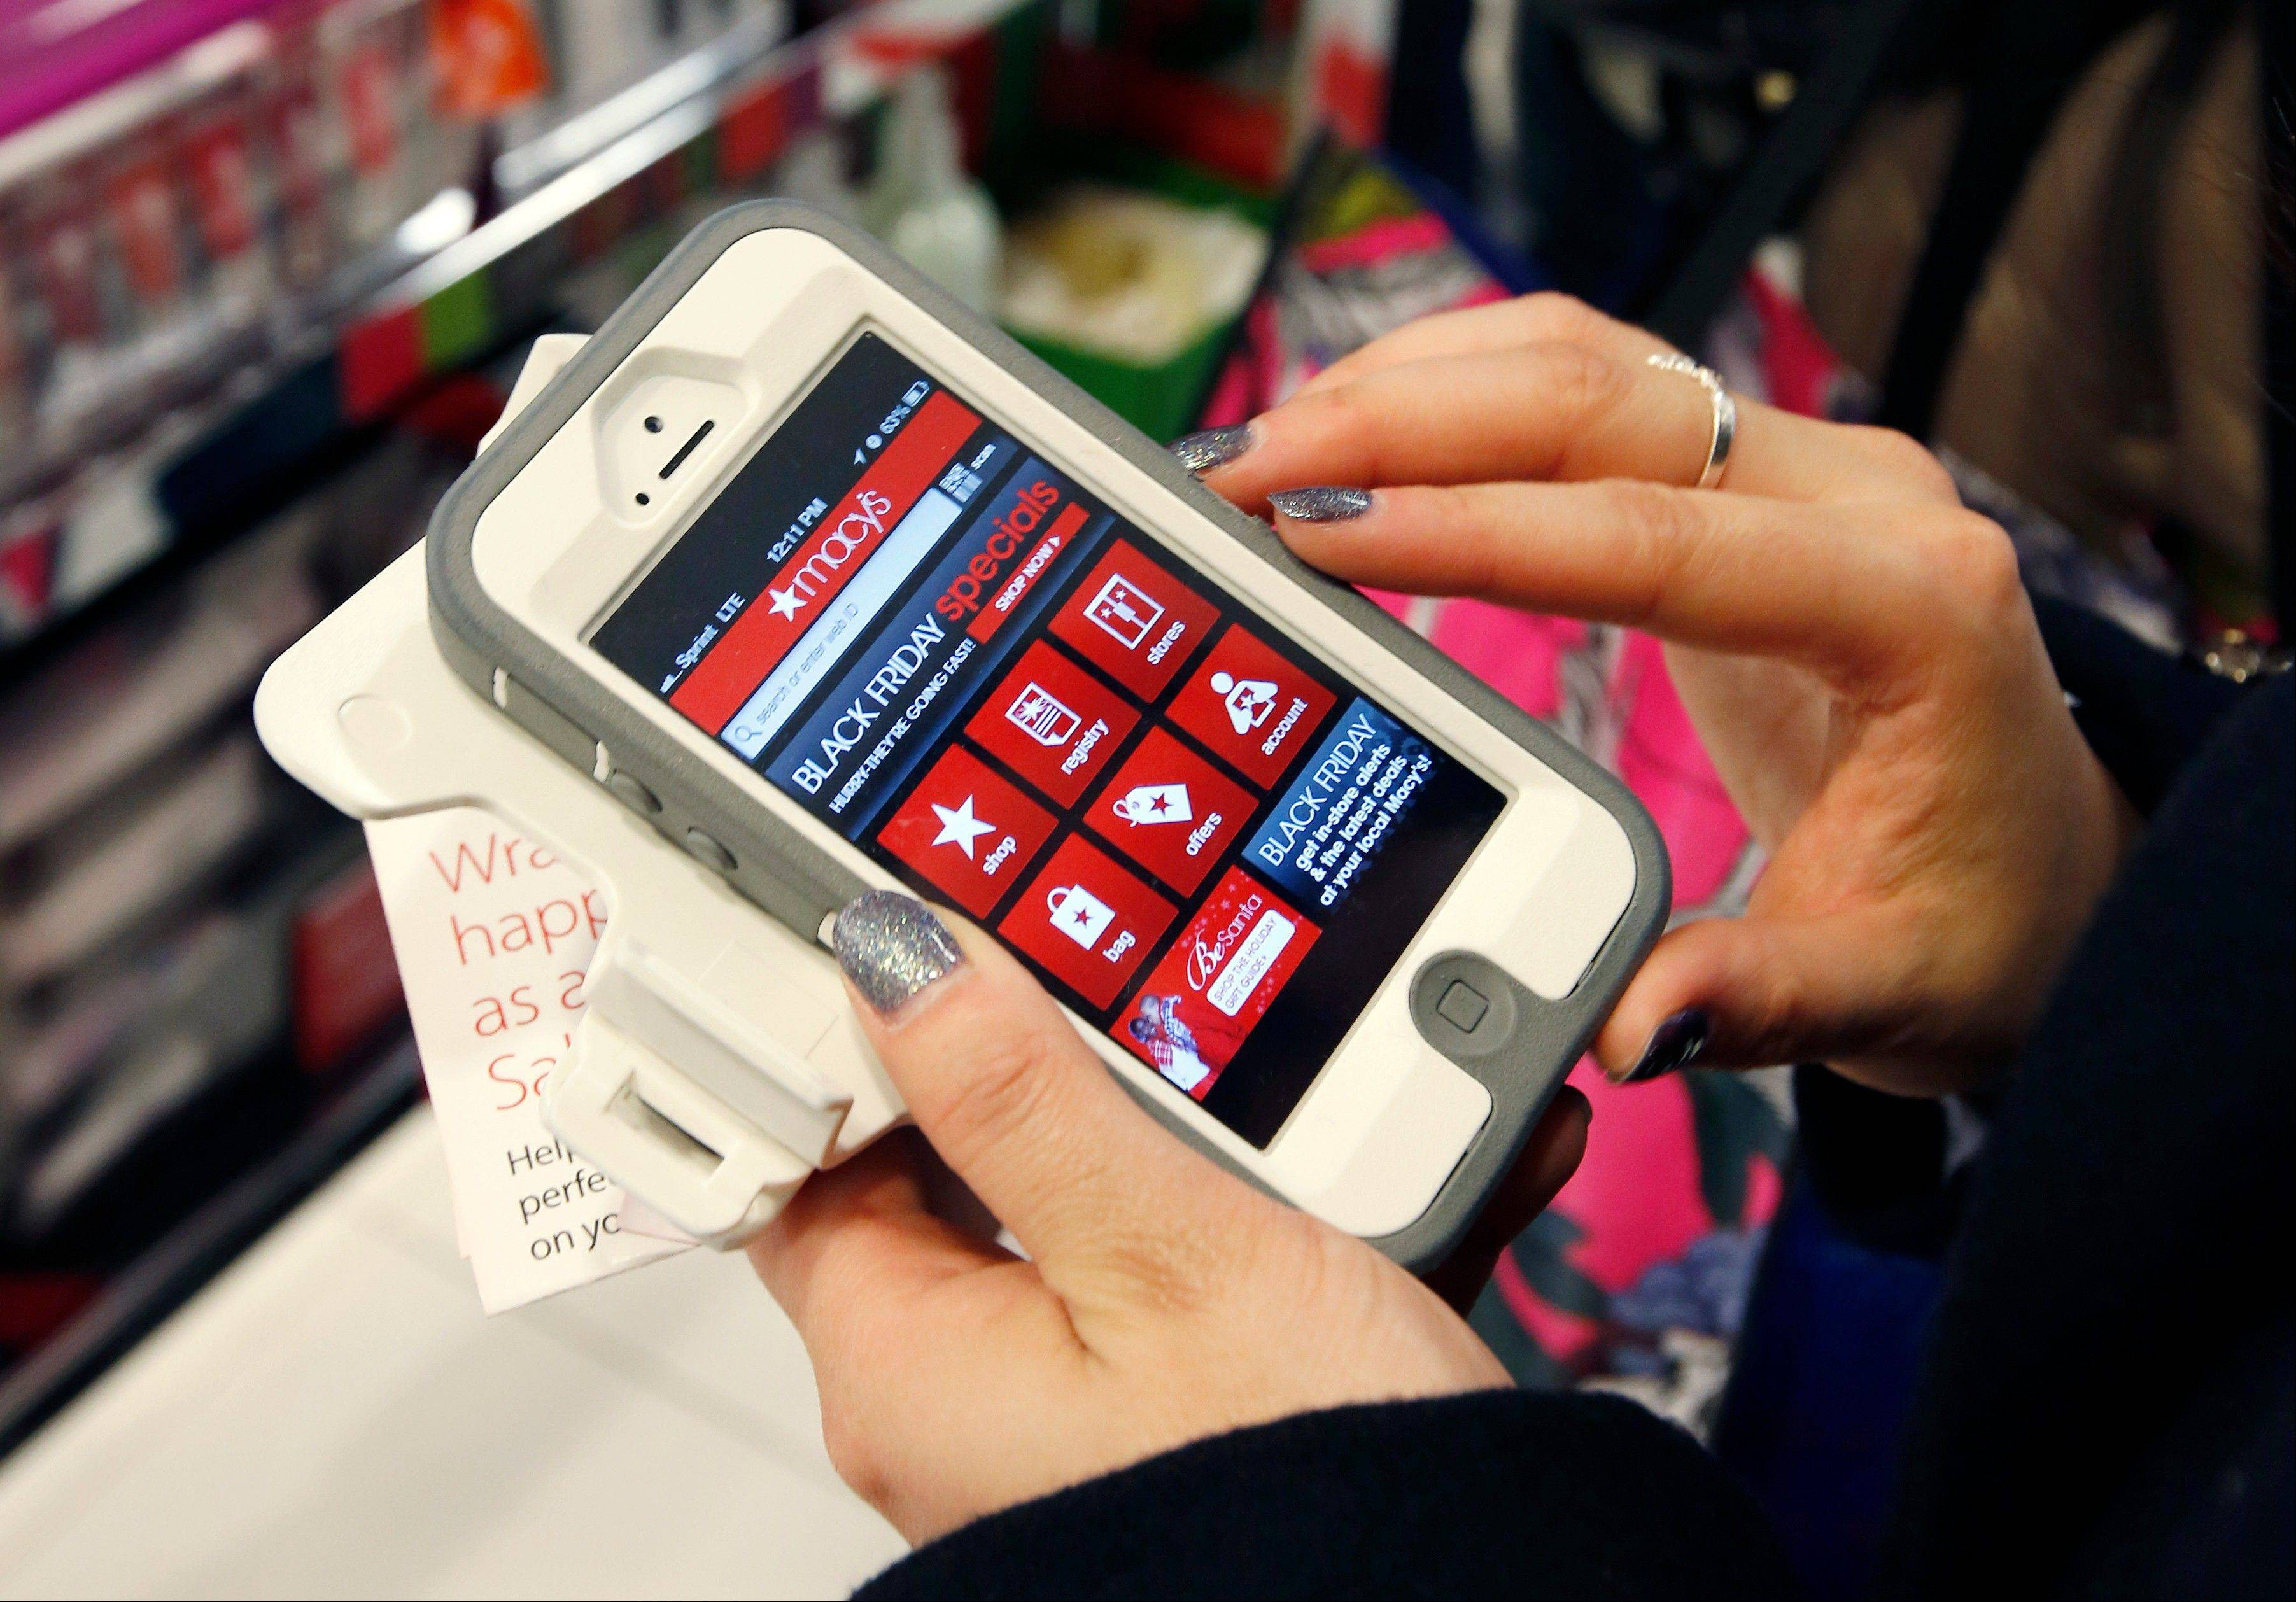 Tashalee Rodriguez of Boston uses a smartphone app while shopping at Macy's in downtown Boston. Big retailers are offering apps that feature a hefty selection of deals.